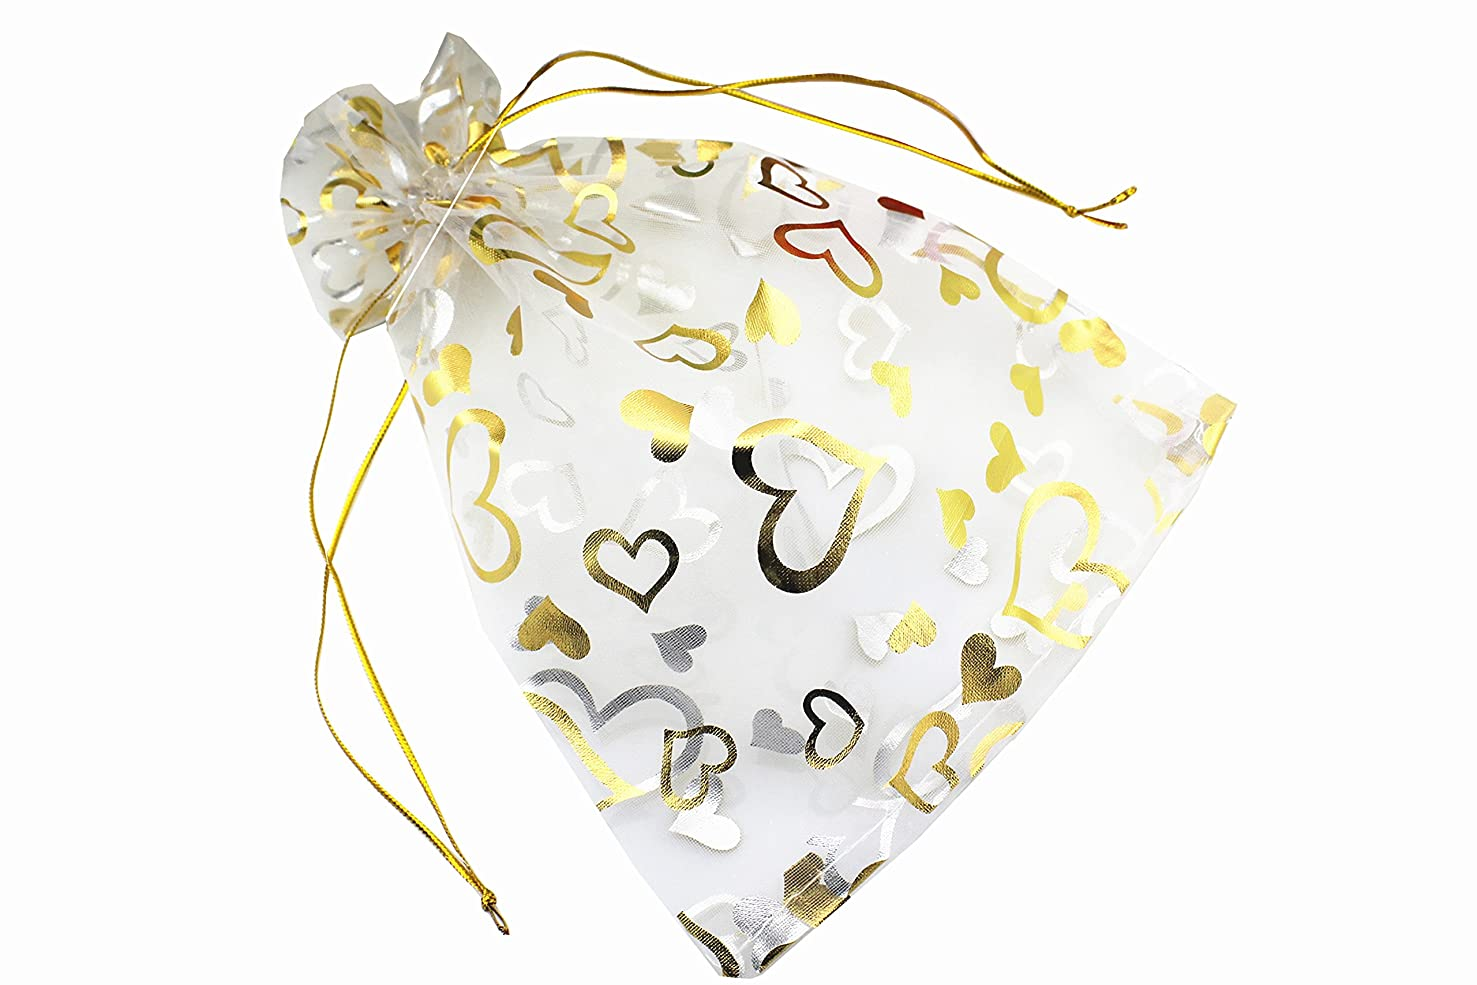 QIANHAILIZZ 100 Pack 7 x 9 Inch Drawstring Flower Heart Bags Organza Jewelry Gift Pouch Candy Pouch Drawstring Wedding Favor Bags (white heart)